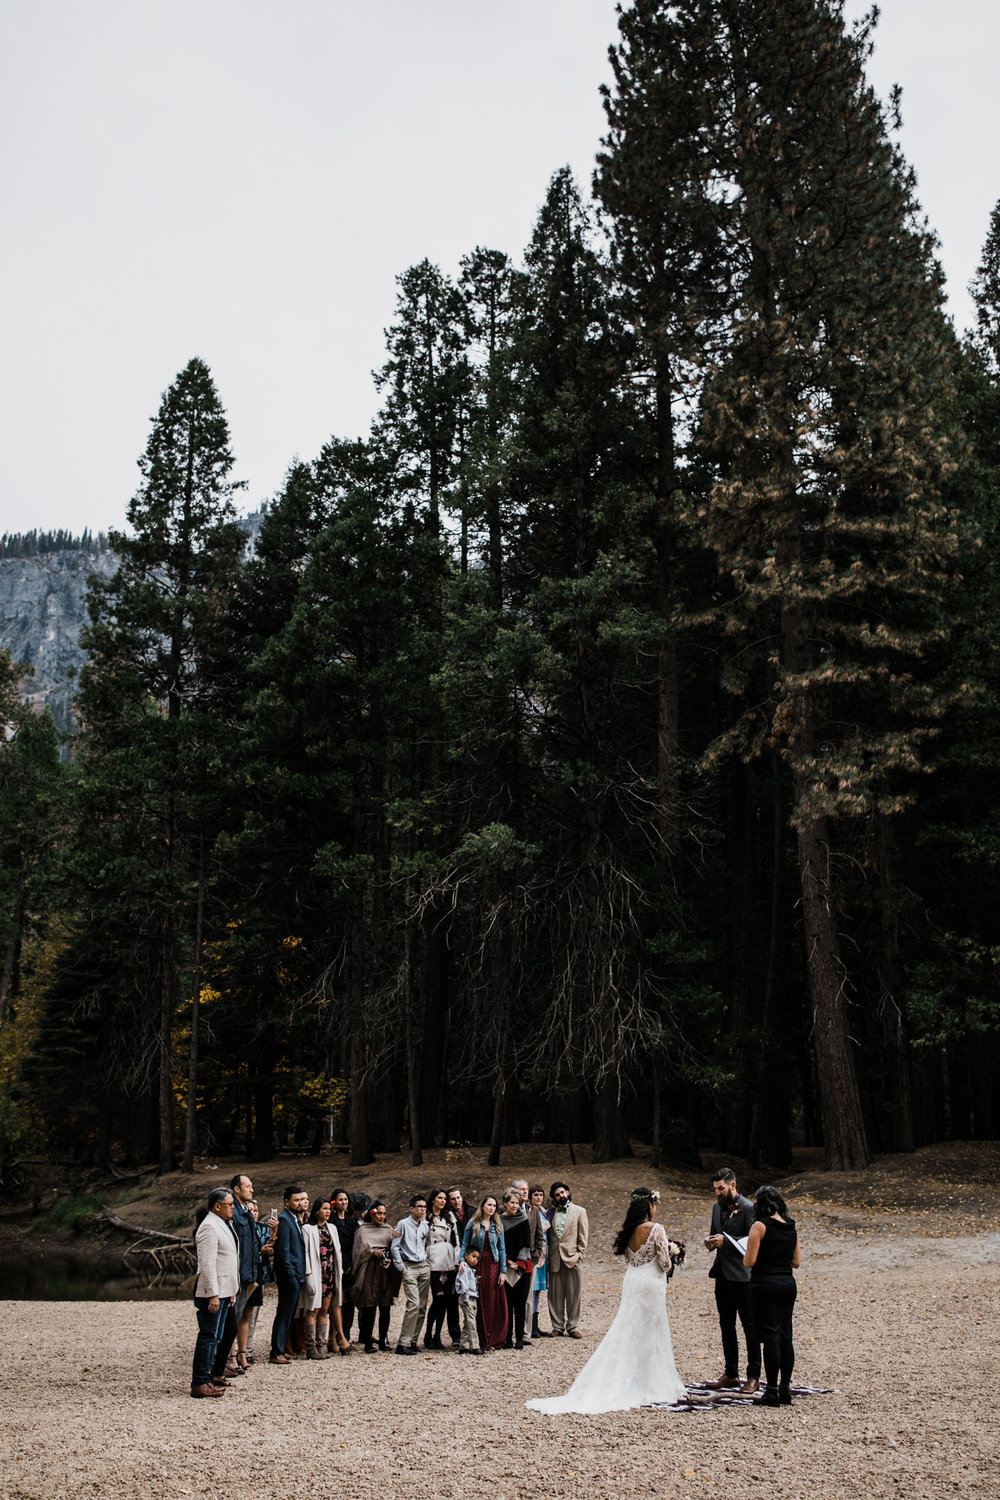 intimate fall wedding day in yosemite national park | destination adventure wedding photographers | the hearnes adventure photography | www.thehearnes.com